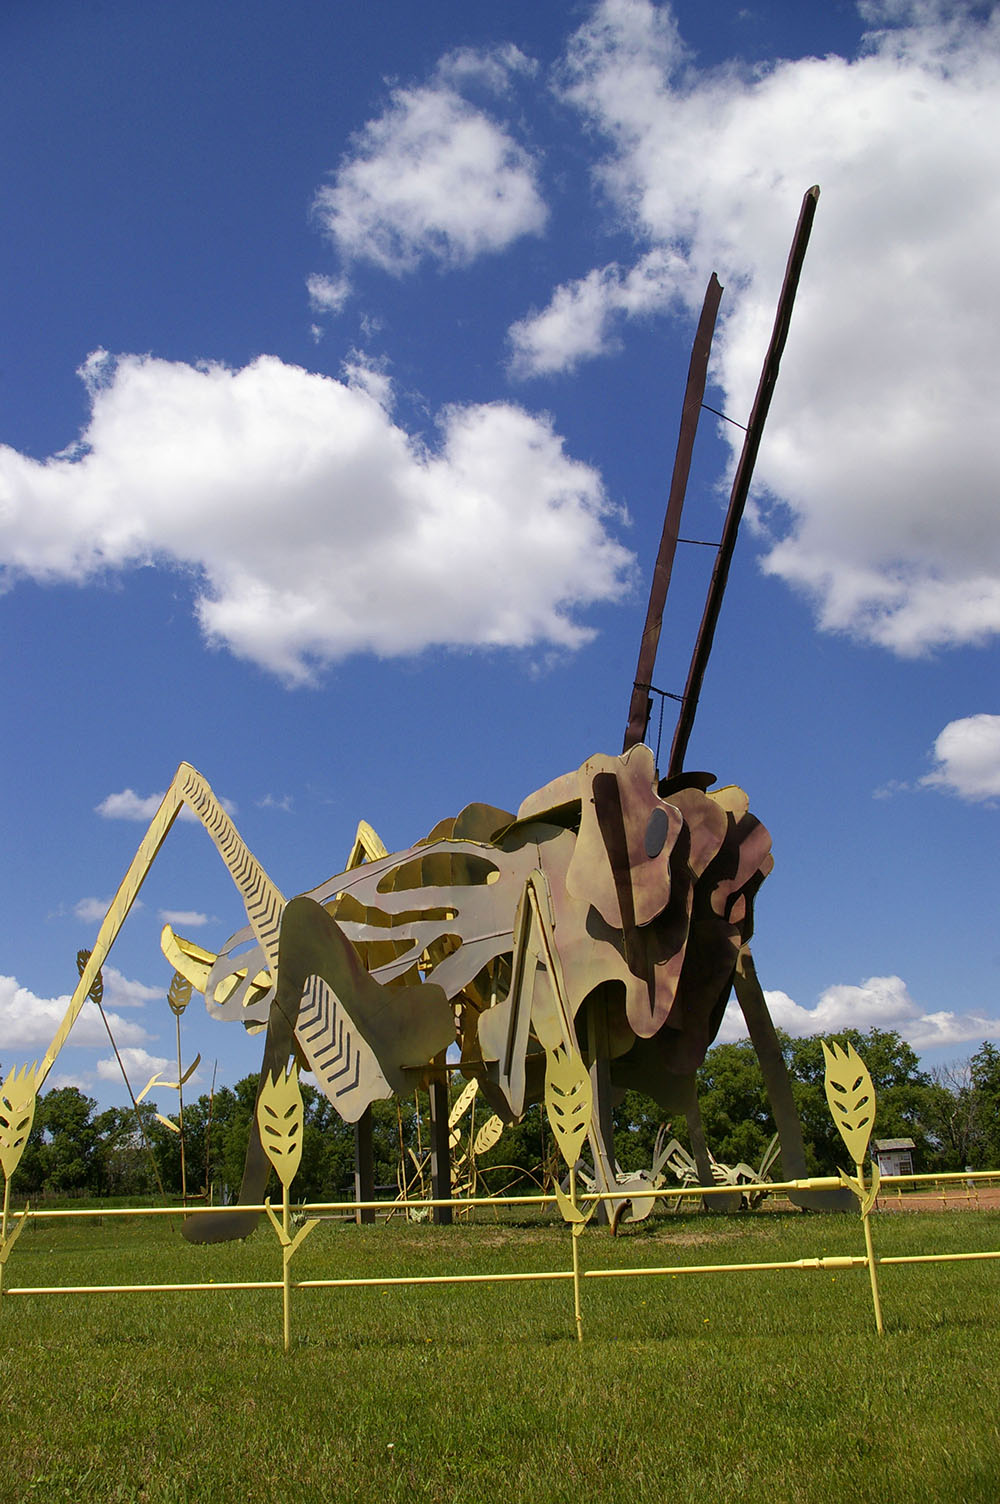 Large yellow, brown and green grasshopper made out of metal behind yellow metal fence shaped like cornstalks